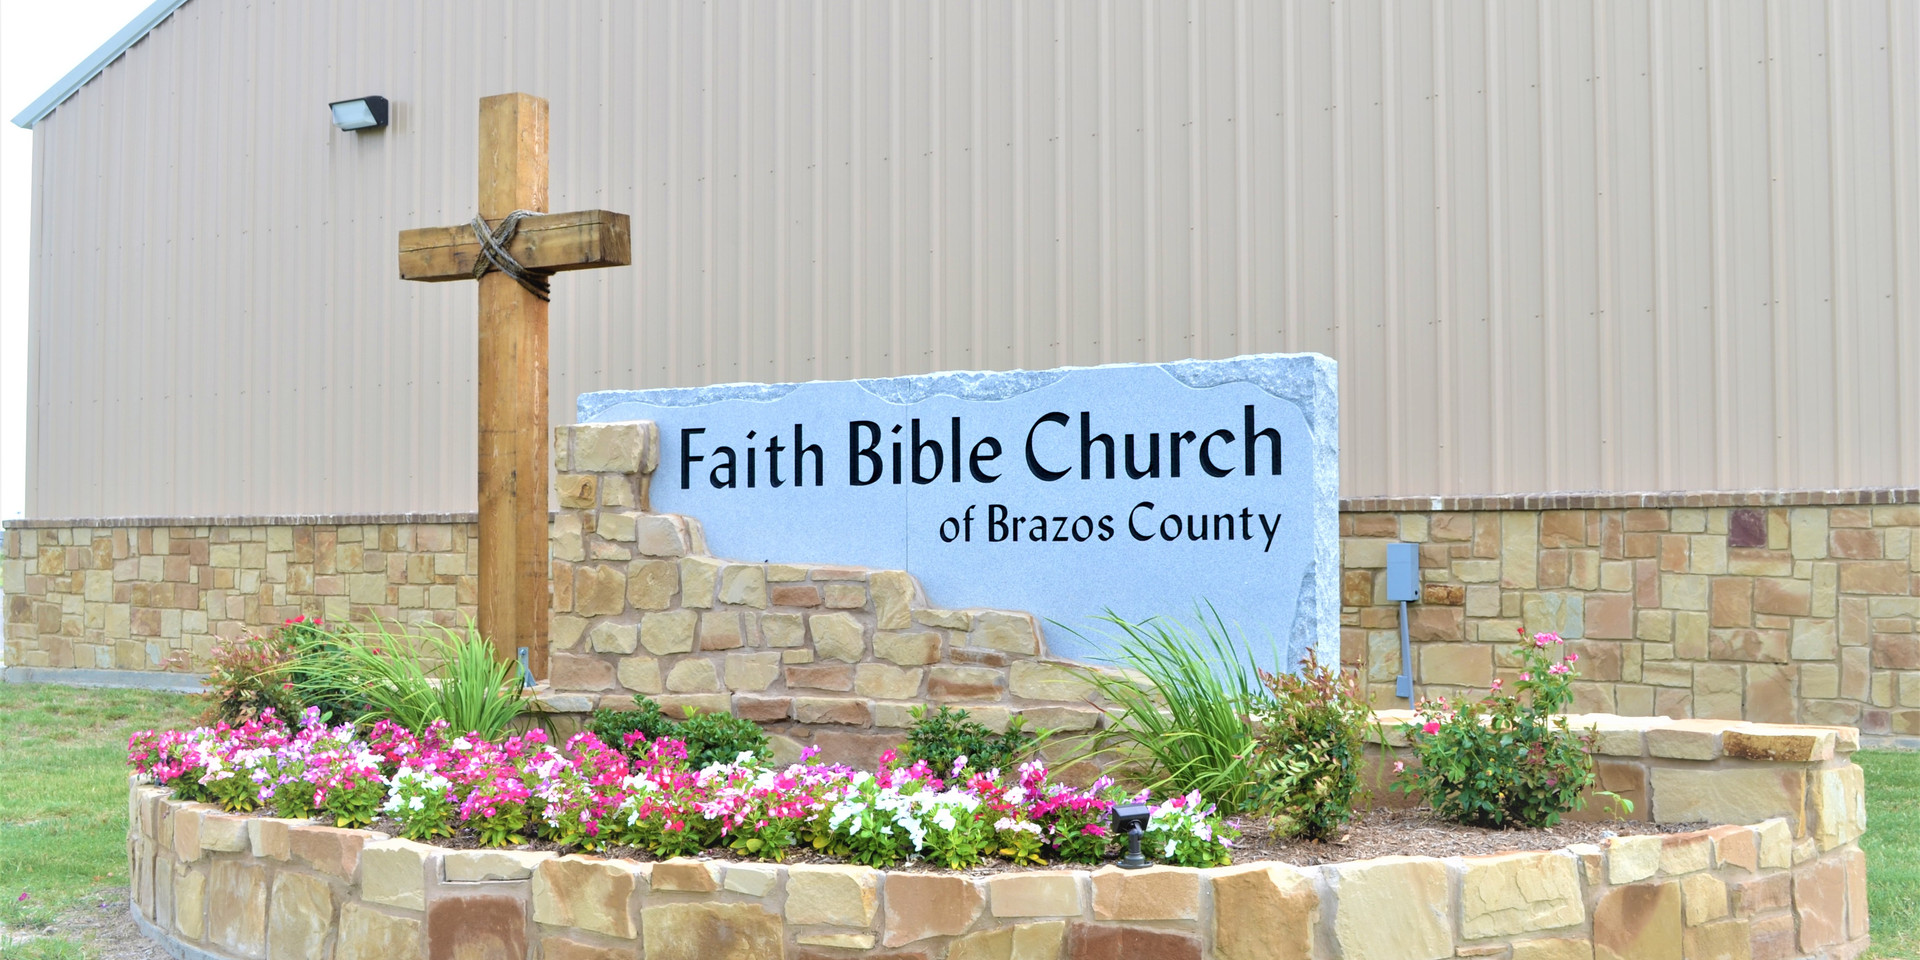 Faith Bible Church of Brazos County